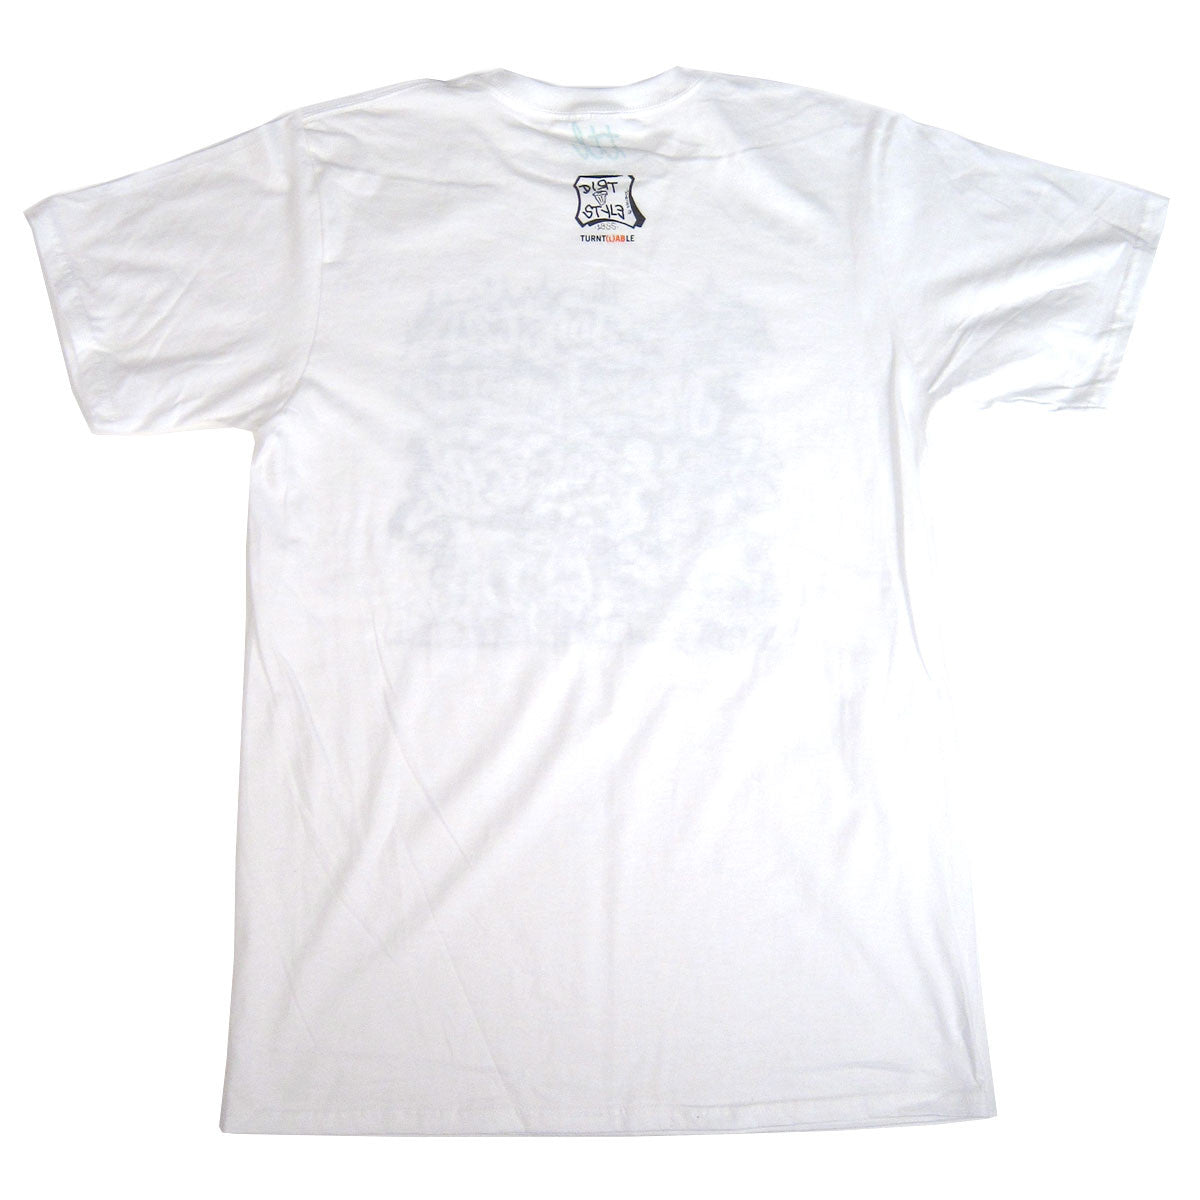 Turntable Lab: Toasted Marshmallow Feet Braxe Shirt (TTL x Thud Rumble)